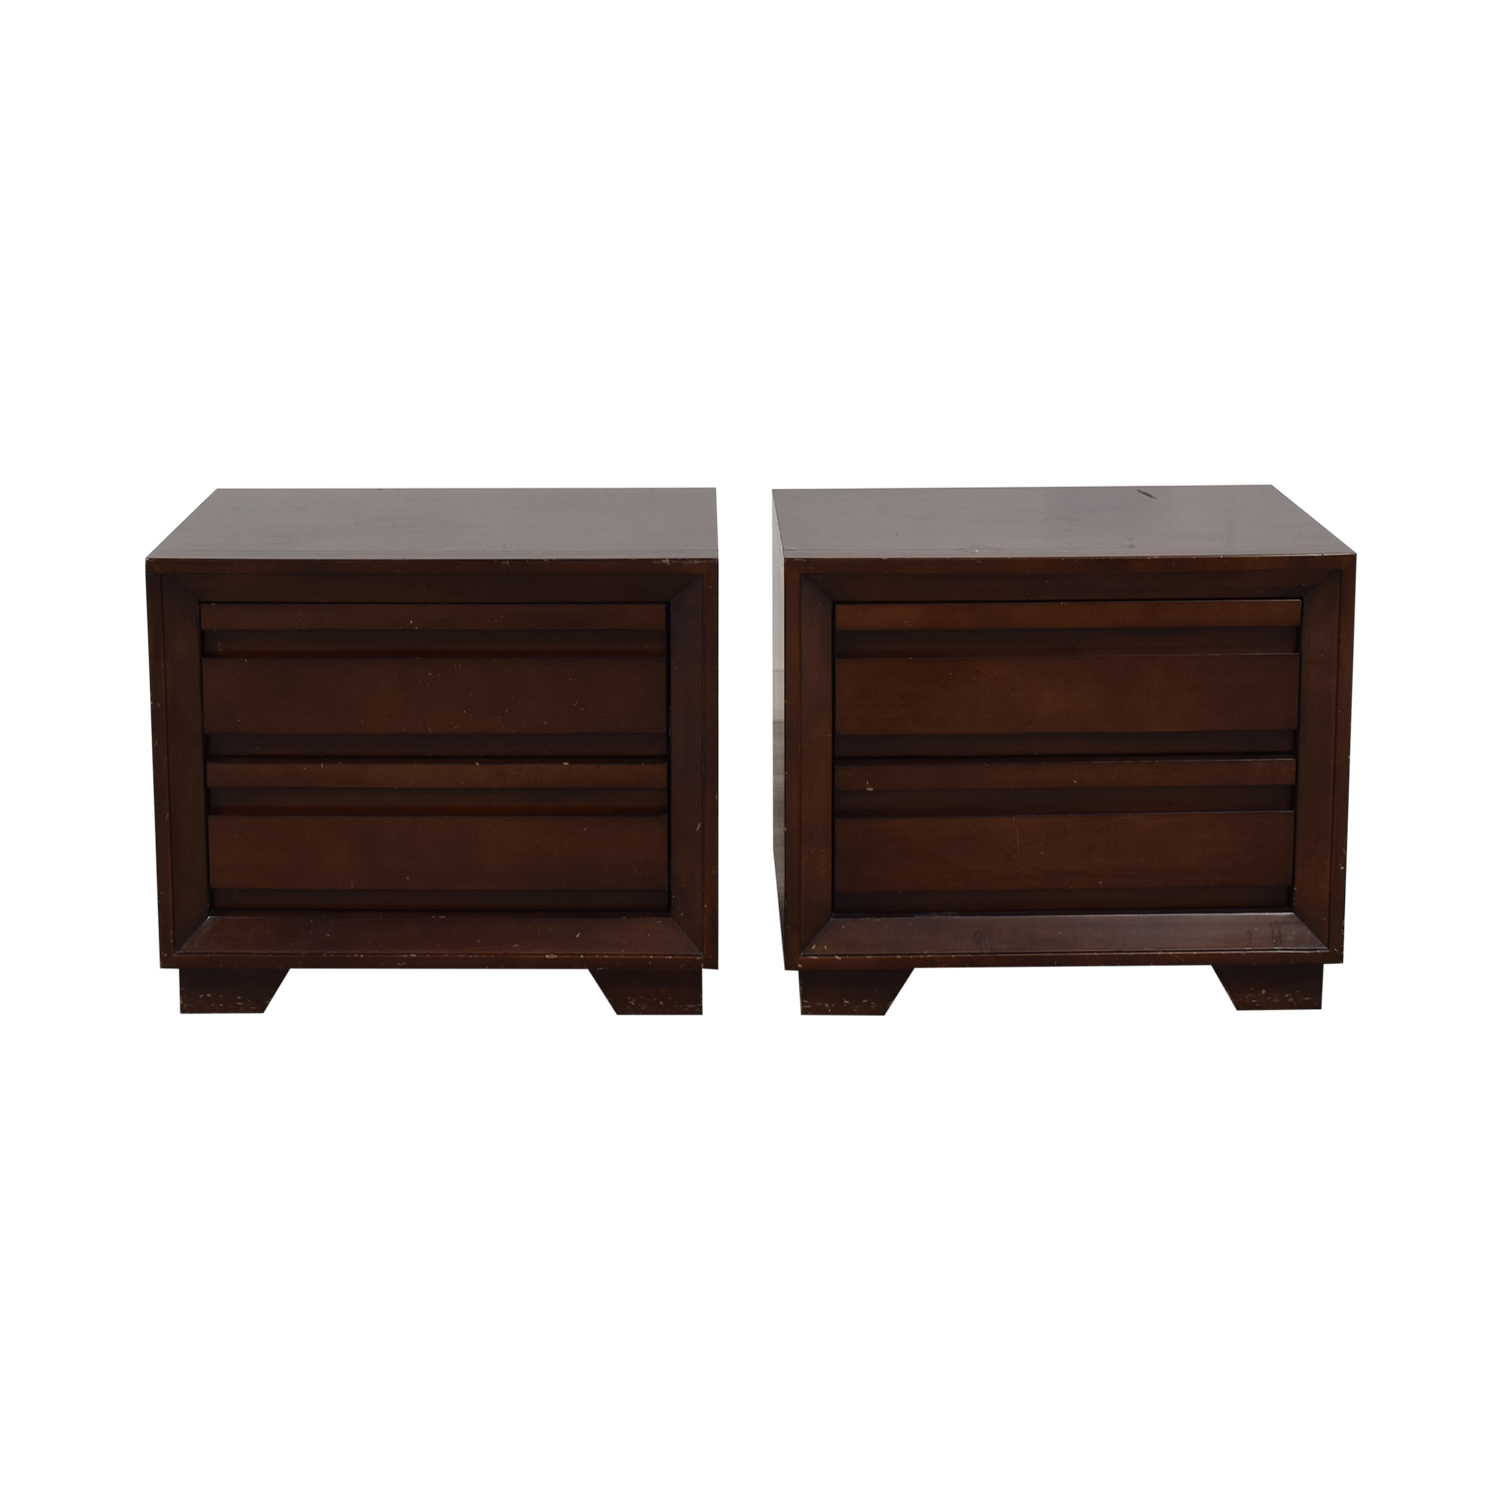 shop Crate & Barrel Two-Drawer Side Tables Crate & Barrel